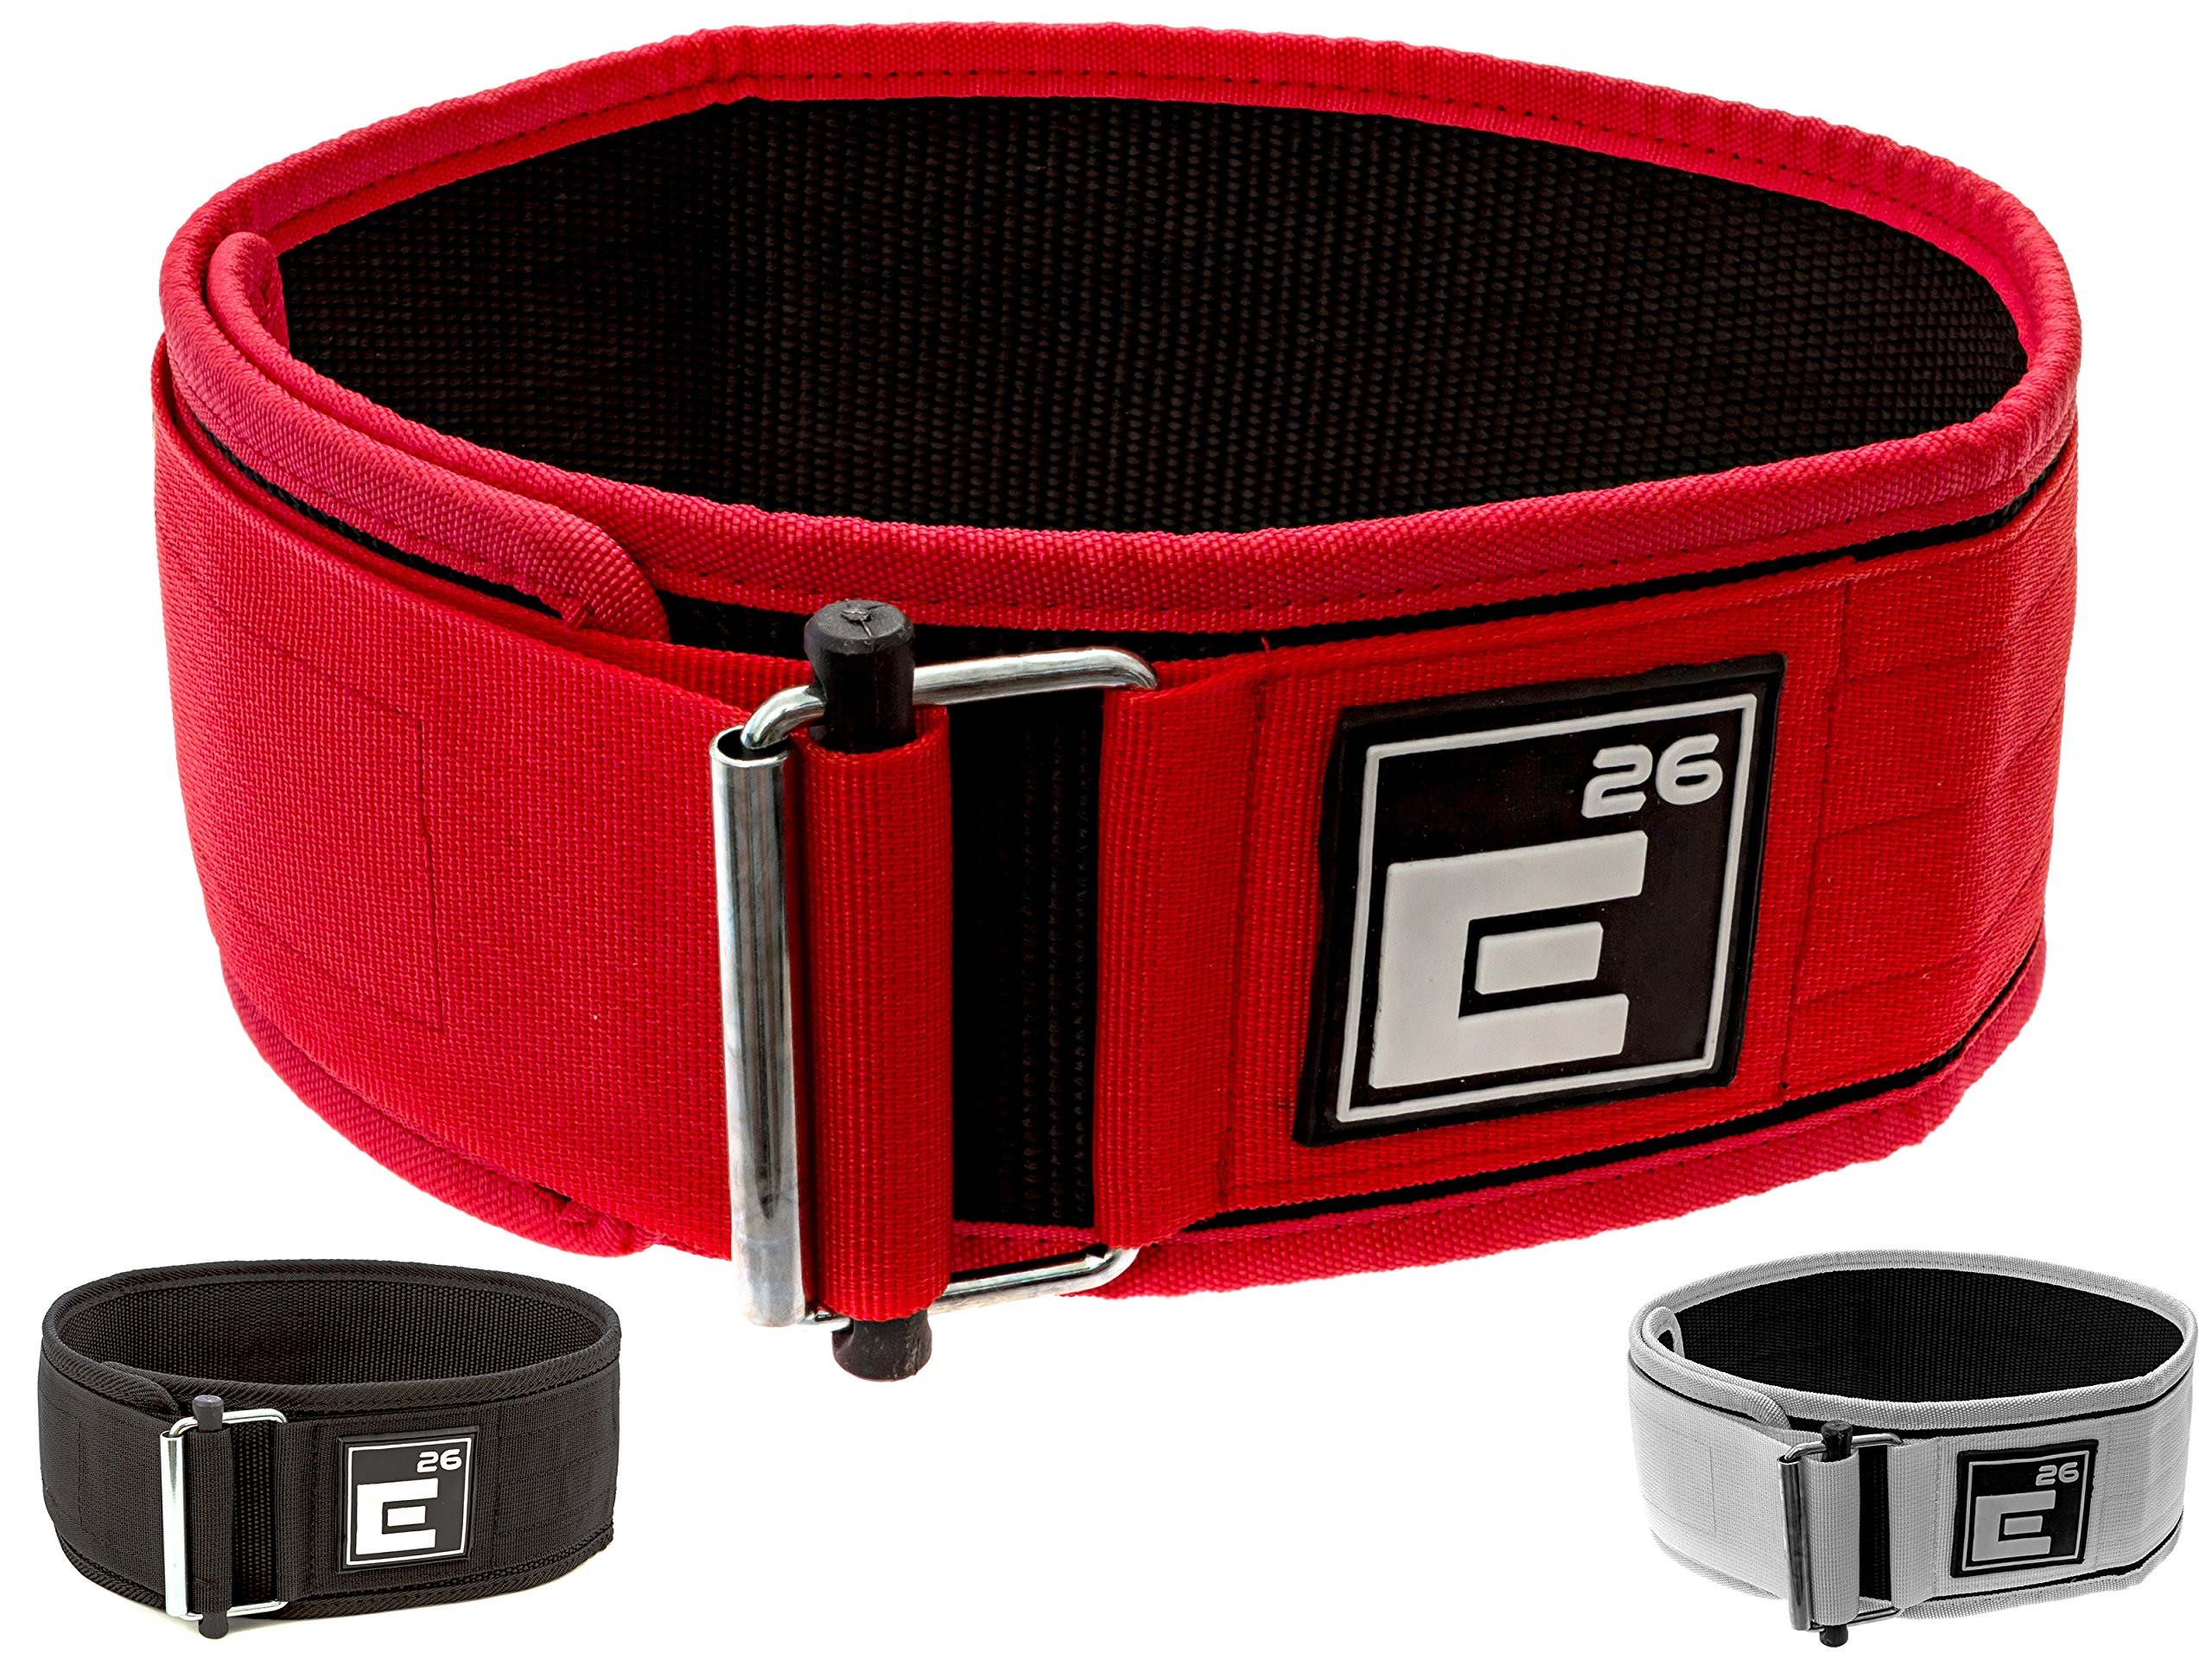 Element 26 Self-Locking Weight Lifting Belt | Premium Weightlifting Belt for Serious Crossfit, Power Lifting, and Olympic Lifting Athletes (Extra Large, Red)